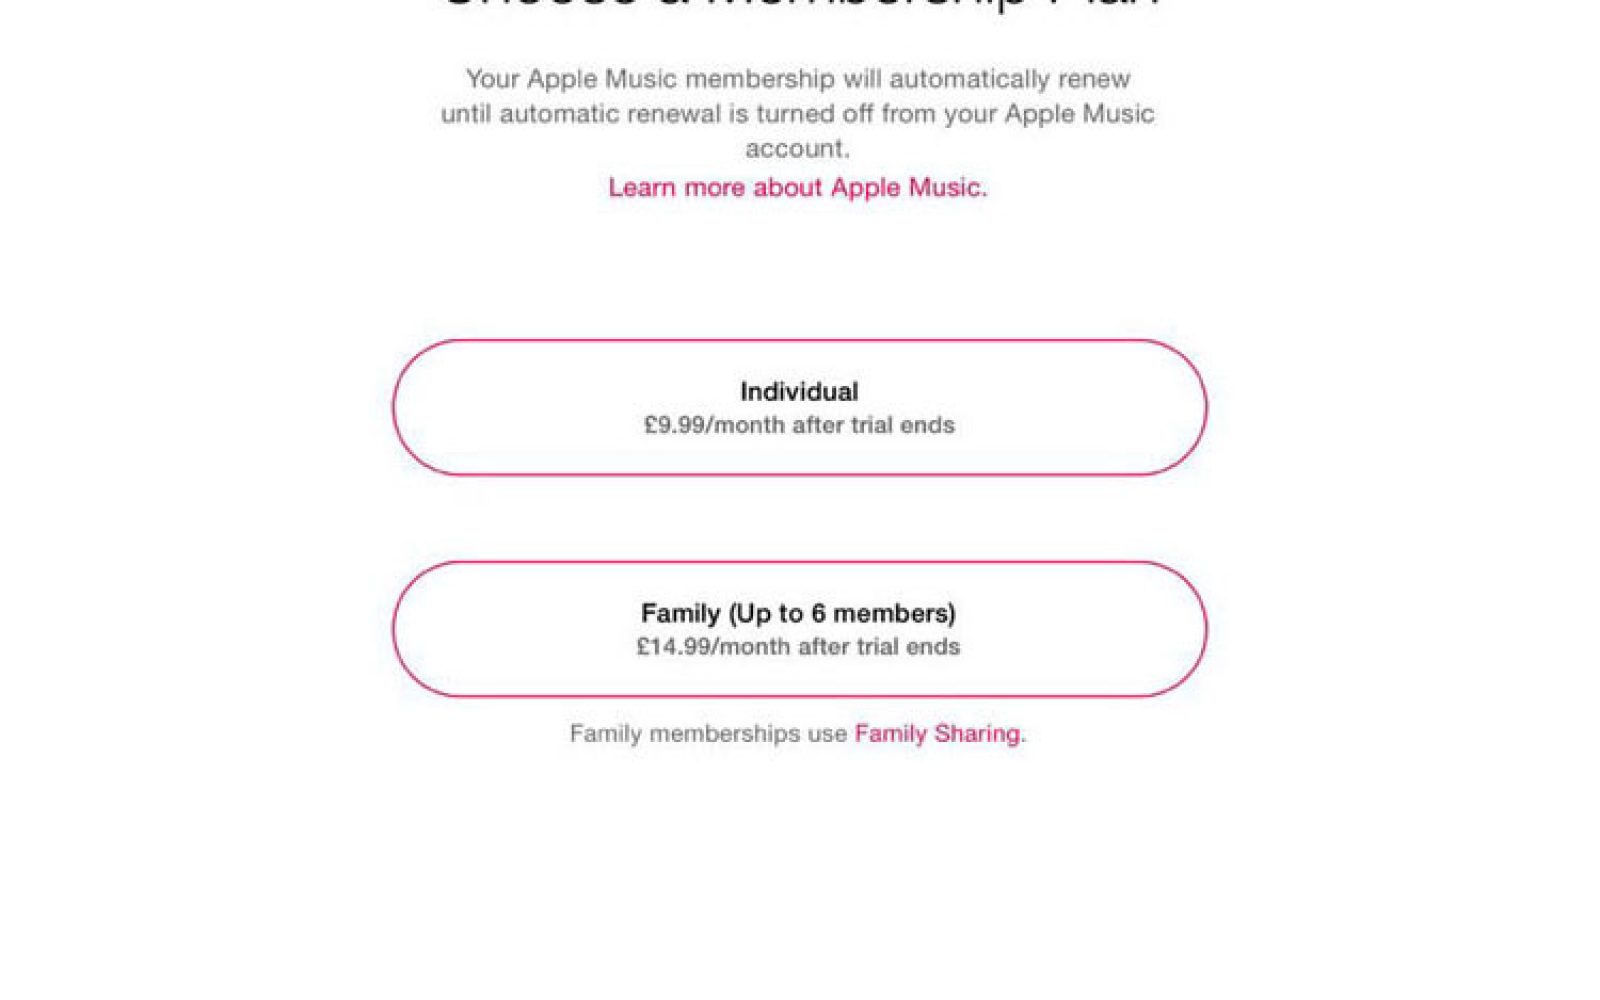 IOS 84 Beta Appears To Confirm European Apple Music Pricing Of